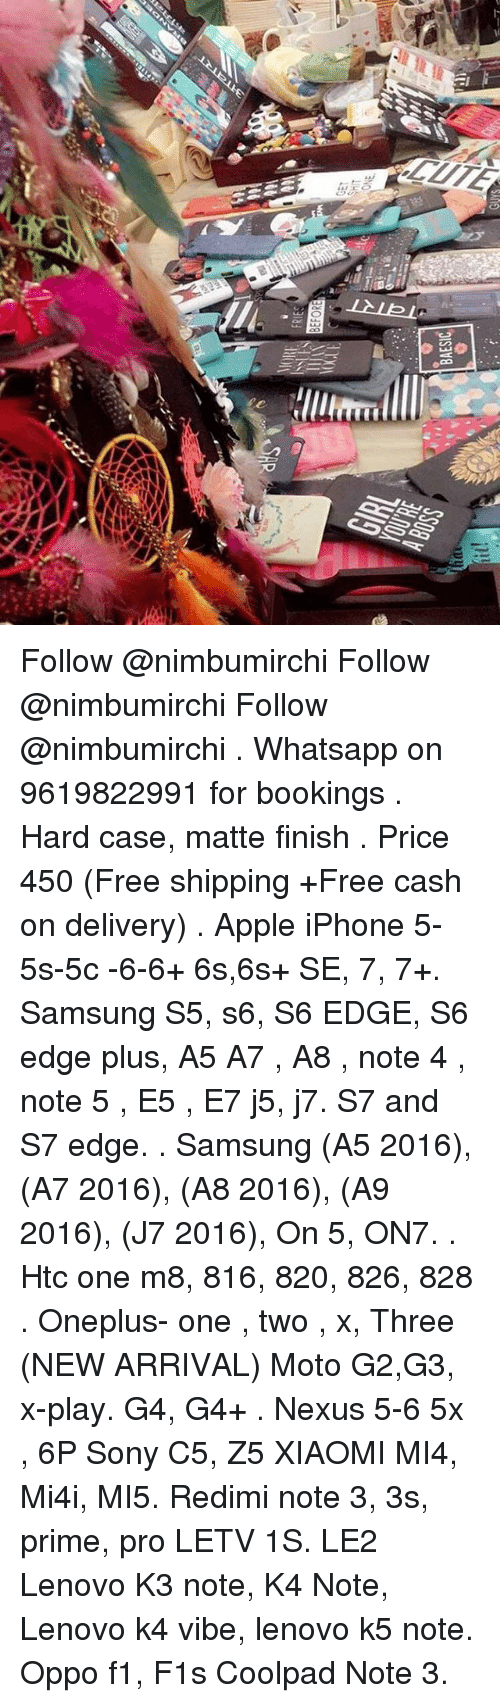 Nexus: BAESIC  -lliterrnl  LLLL Follow @nimbumirchi Follow @nimbumirchi Follow @nimbumirchi . Whatsapp on 9619822991 for bookings . Hard case, matte finish . Price 450 (Free shipping +Free cash on delivery) . Apple iPhone 5-5s-5c -6-6+ 6s,6s+ SE, 7, 7+. Samsung S5, s6, S6 EDGE, S6 edge plus, A5 A7 , A8 , note 4 , note 5 , E5 , E7 j5, j7. S7 and S7 edge. . Samsung (A5 2016), (A7 2016), (A8 2016), (A9 2016), (J7 2016), On 5, ON7. . Htc one m8, 816, 820, 826, 828 . Oneplus- one , two , x, Three (NEW ARRIVAL) Moto G2,G3, x-play. G4, G4+ . Nexus 5-6 5x , 6P Sony C5, Z5 XIAOMI MI4, Mi4i, MI5. Redimi note 3, 3s, prime, pro LETV 1S. LE2 Lenovo K3 note, K4 Note, Lenovo k4 vibe, lenovo k5 note. Oppo f1, F1s Coolpad Note 3.